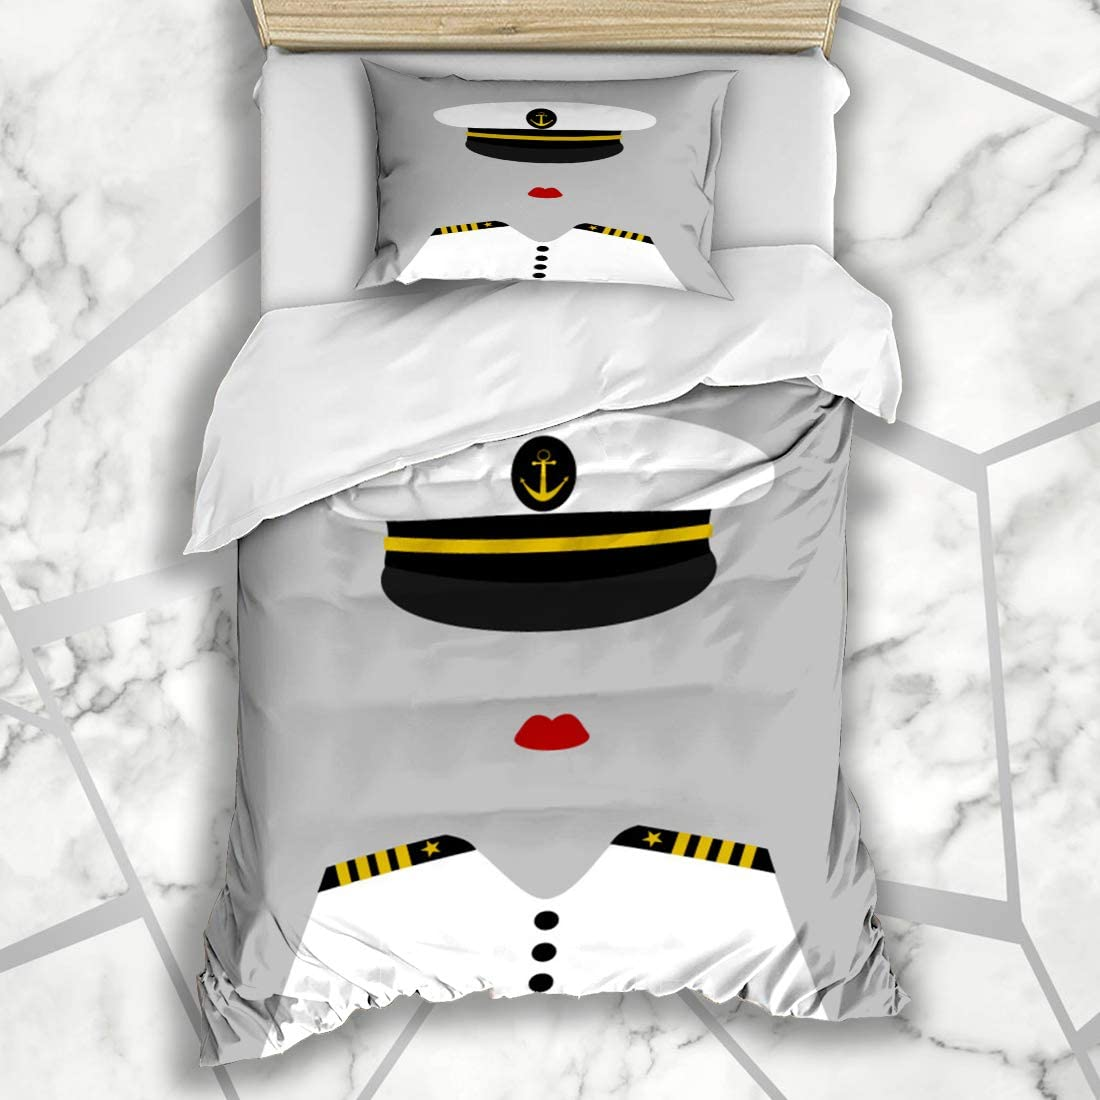 FUEWU Bedding Duvet Cover Sets Twin 68x86 Inches Navy Hat Funny Success Female Sailor Ocean Captain Yellow Uniform Admiral Girl Woman Anchor Black Soft Microfiber Bedroom with 1 Pillow Shams